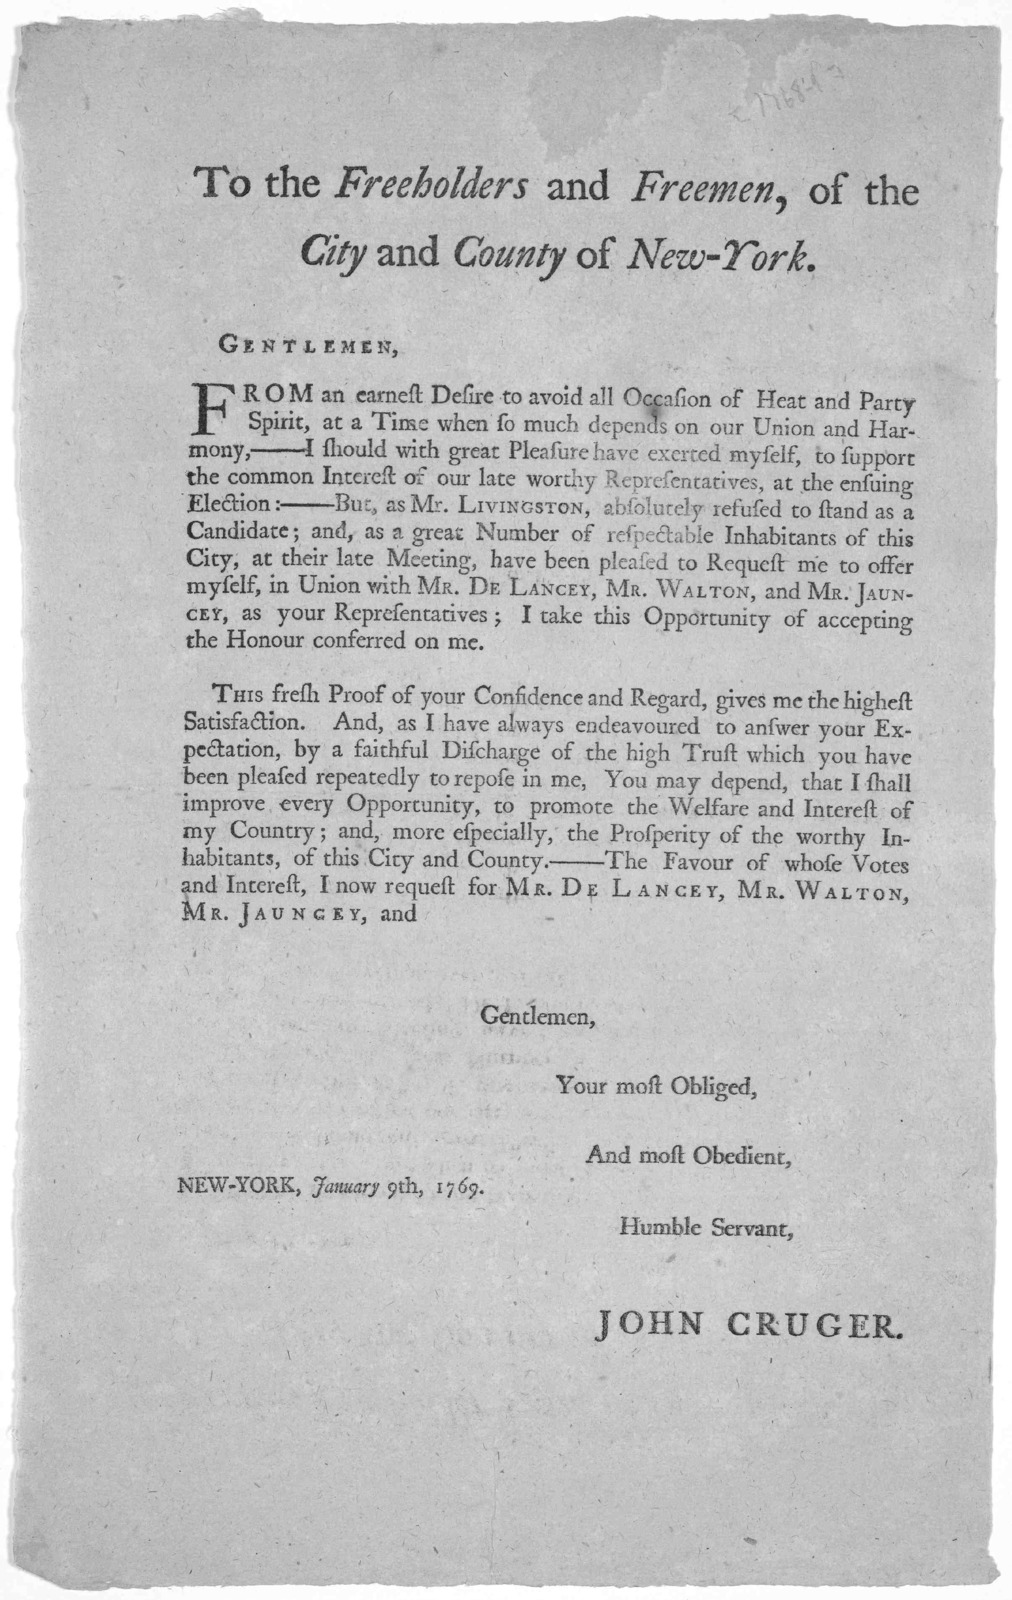 To the freeholders and freemen, of the City and County of New-York. Gentlemen. From an earnest desire to avoid all occasion of heat and party spirit, at a time when so much depends on our Union and harmony ... But as Mr. Livingston, absolutely r